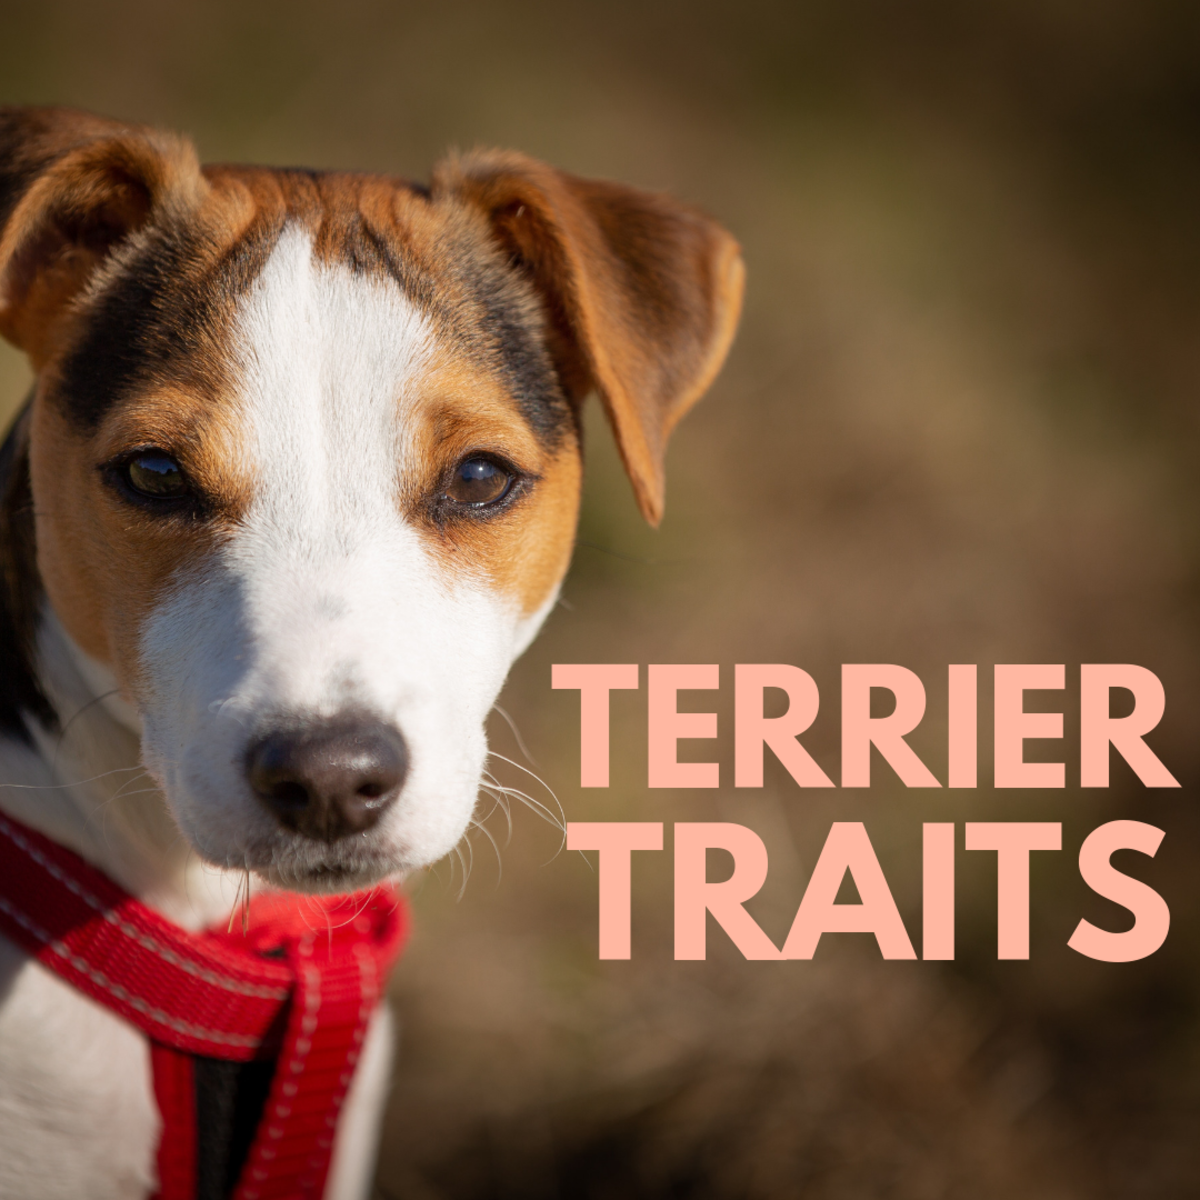 Terrier Traits